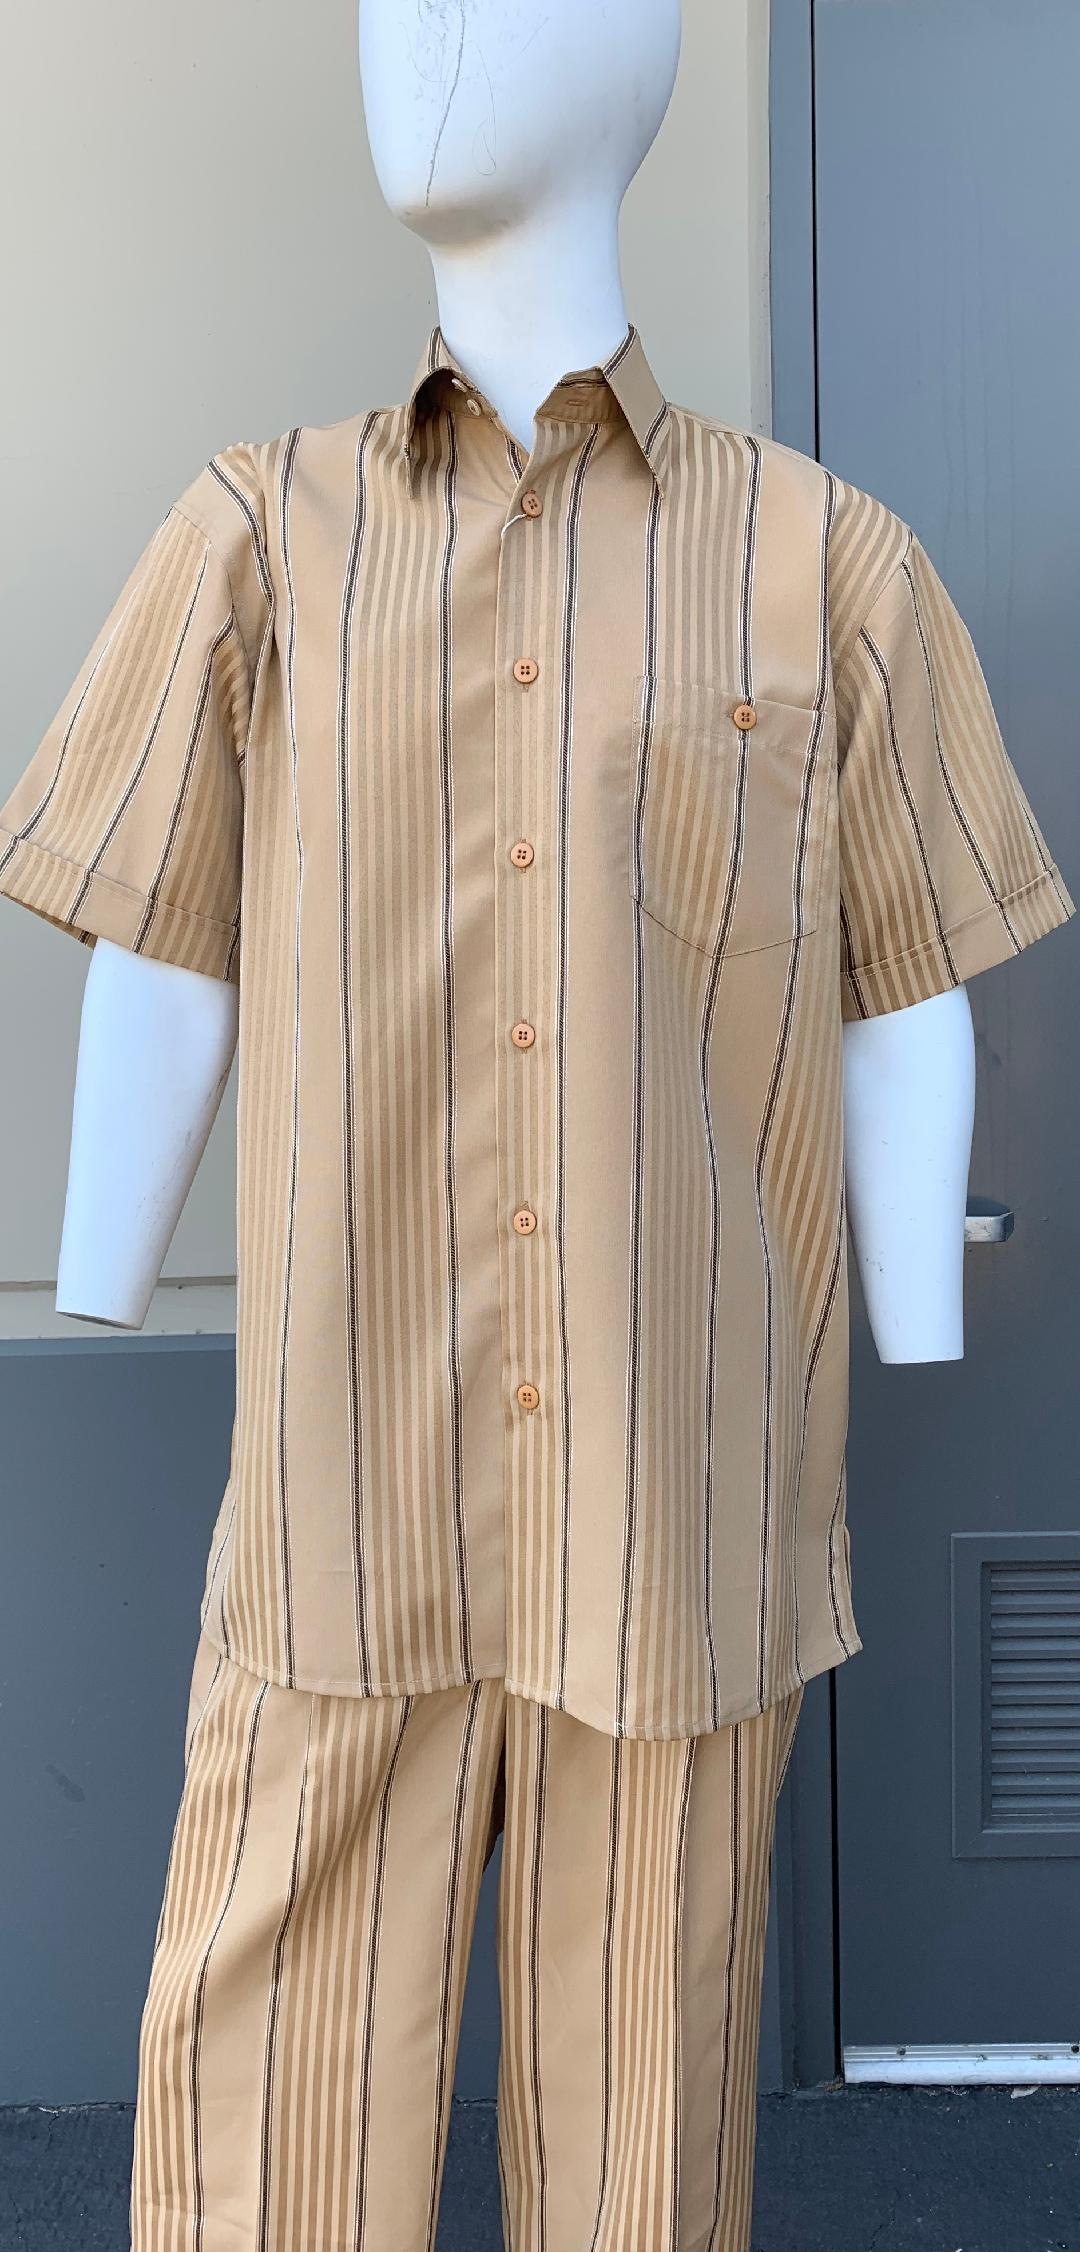 Lemongrass Stripes Short Sleeve 2pc Walking Suit Set - Gold